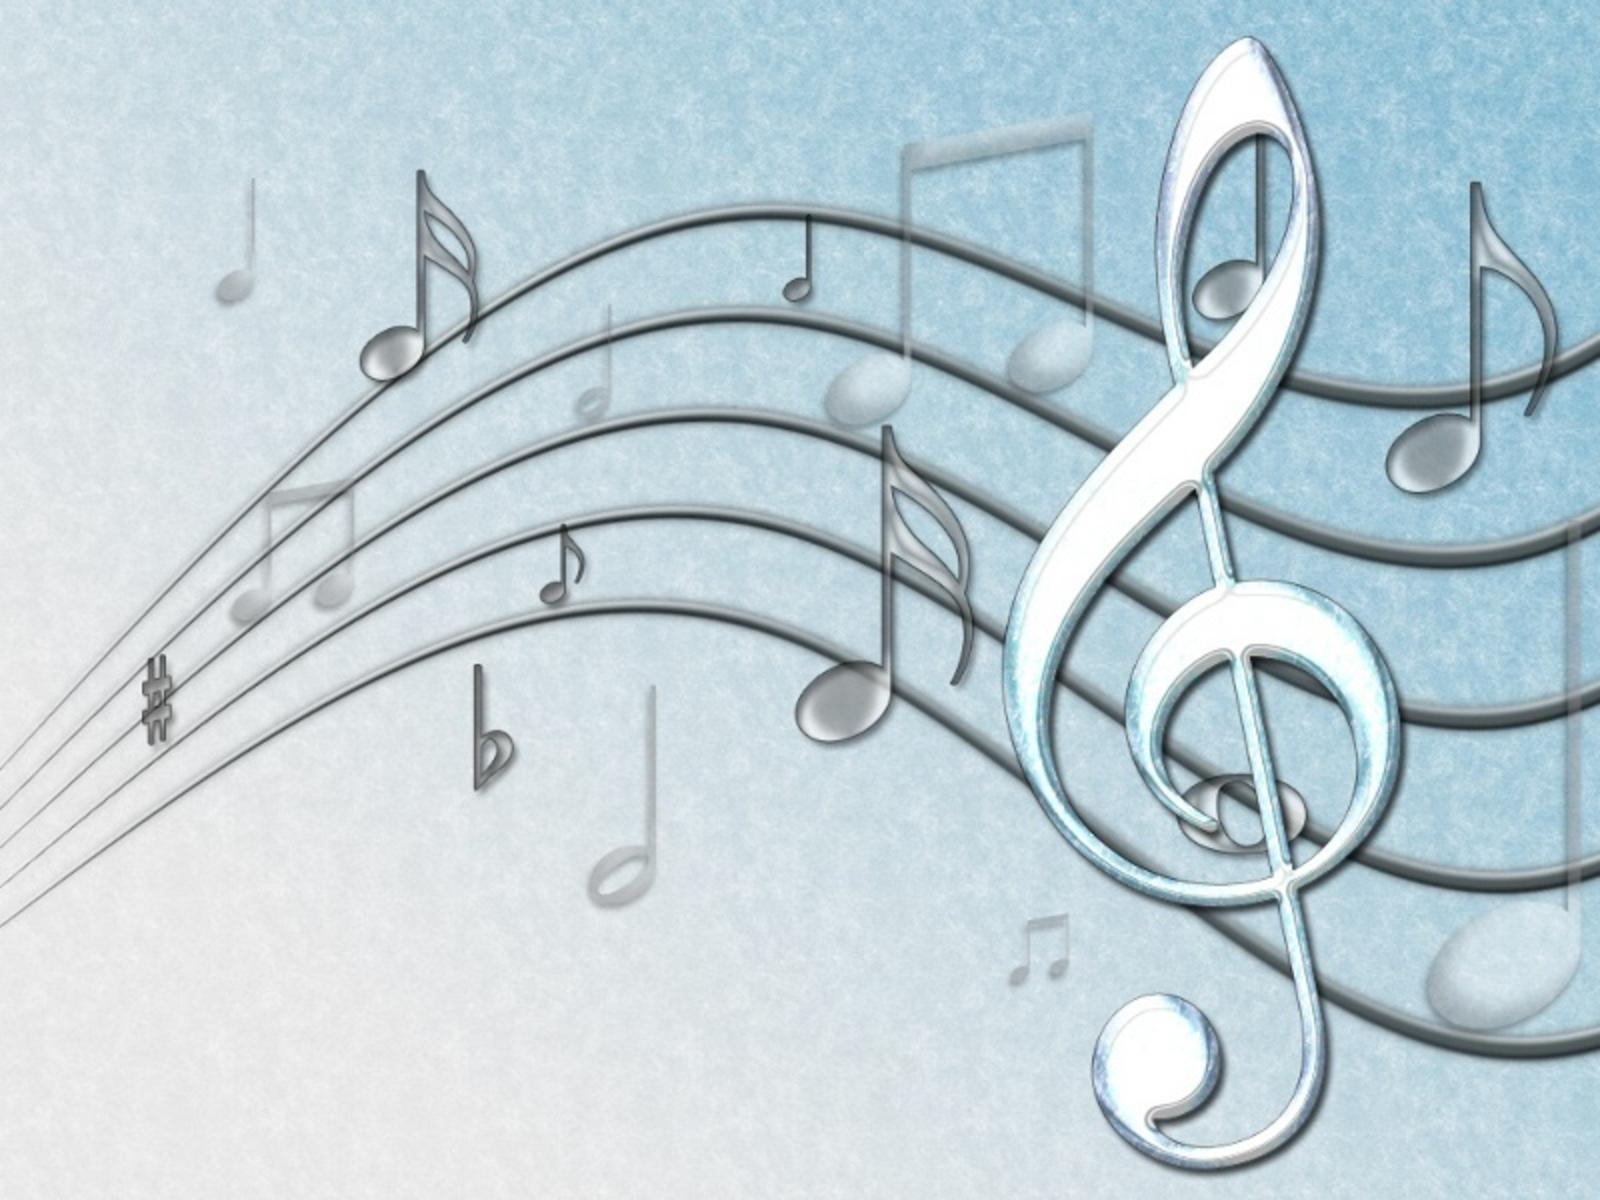 6 Musical Notes Hd Wallpapers Backgrounds Wallpaper Abyss